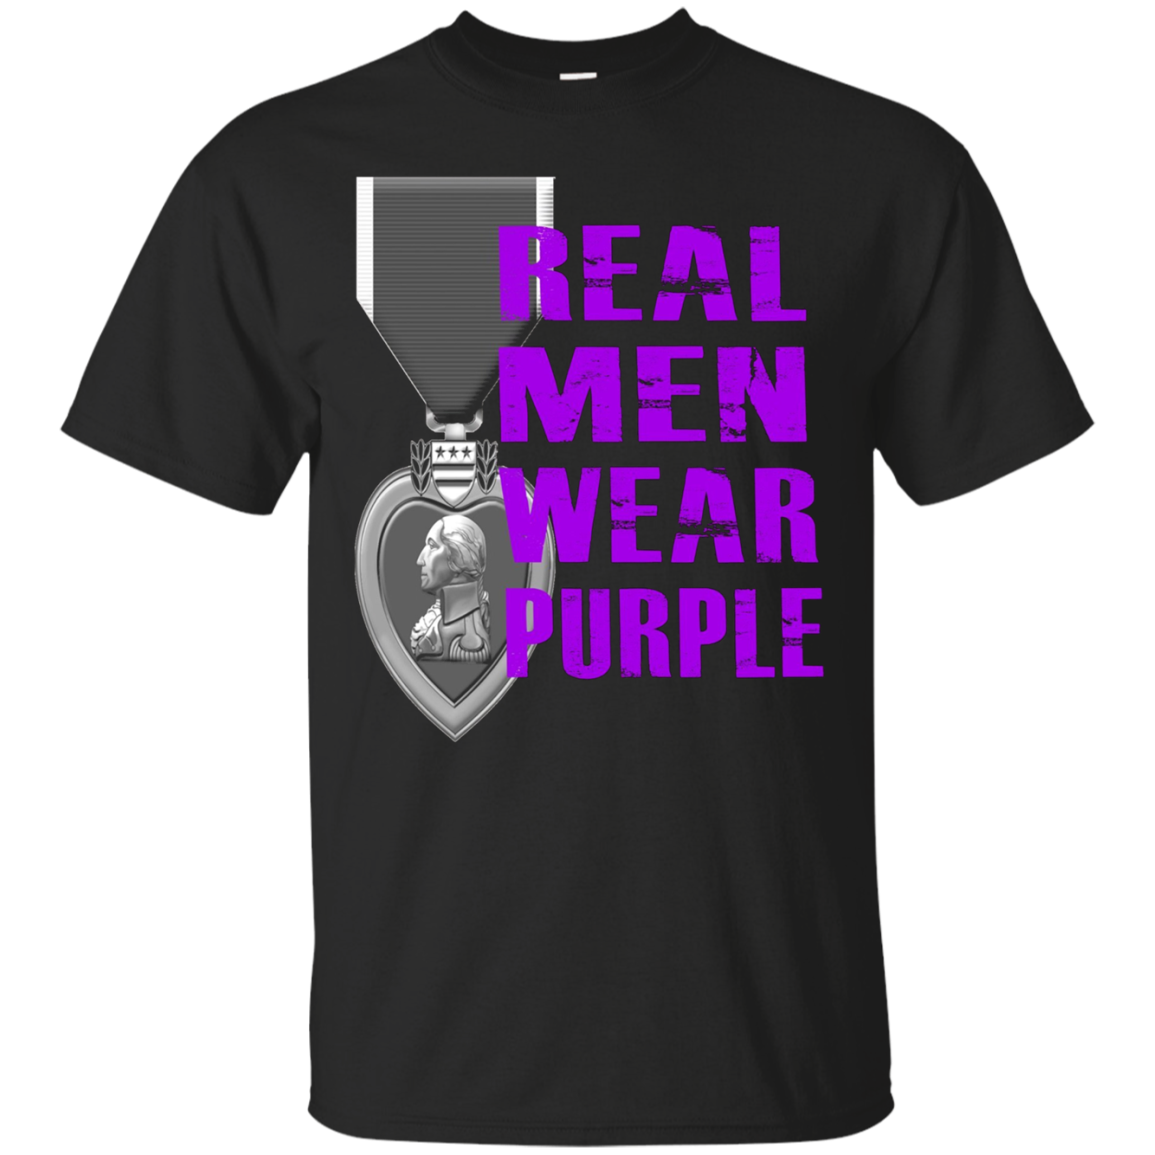 Real Men Wear Purple - Purple Heart Day August 7th shirt